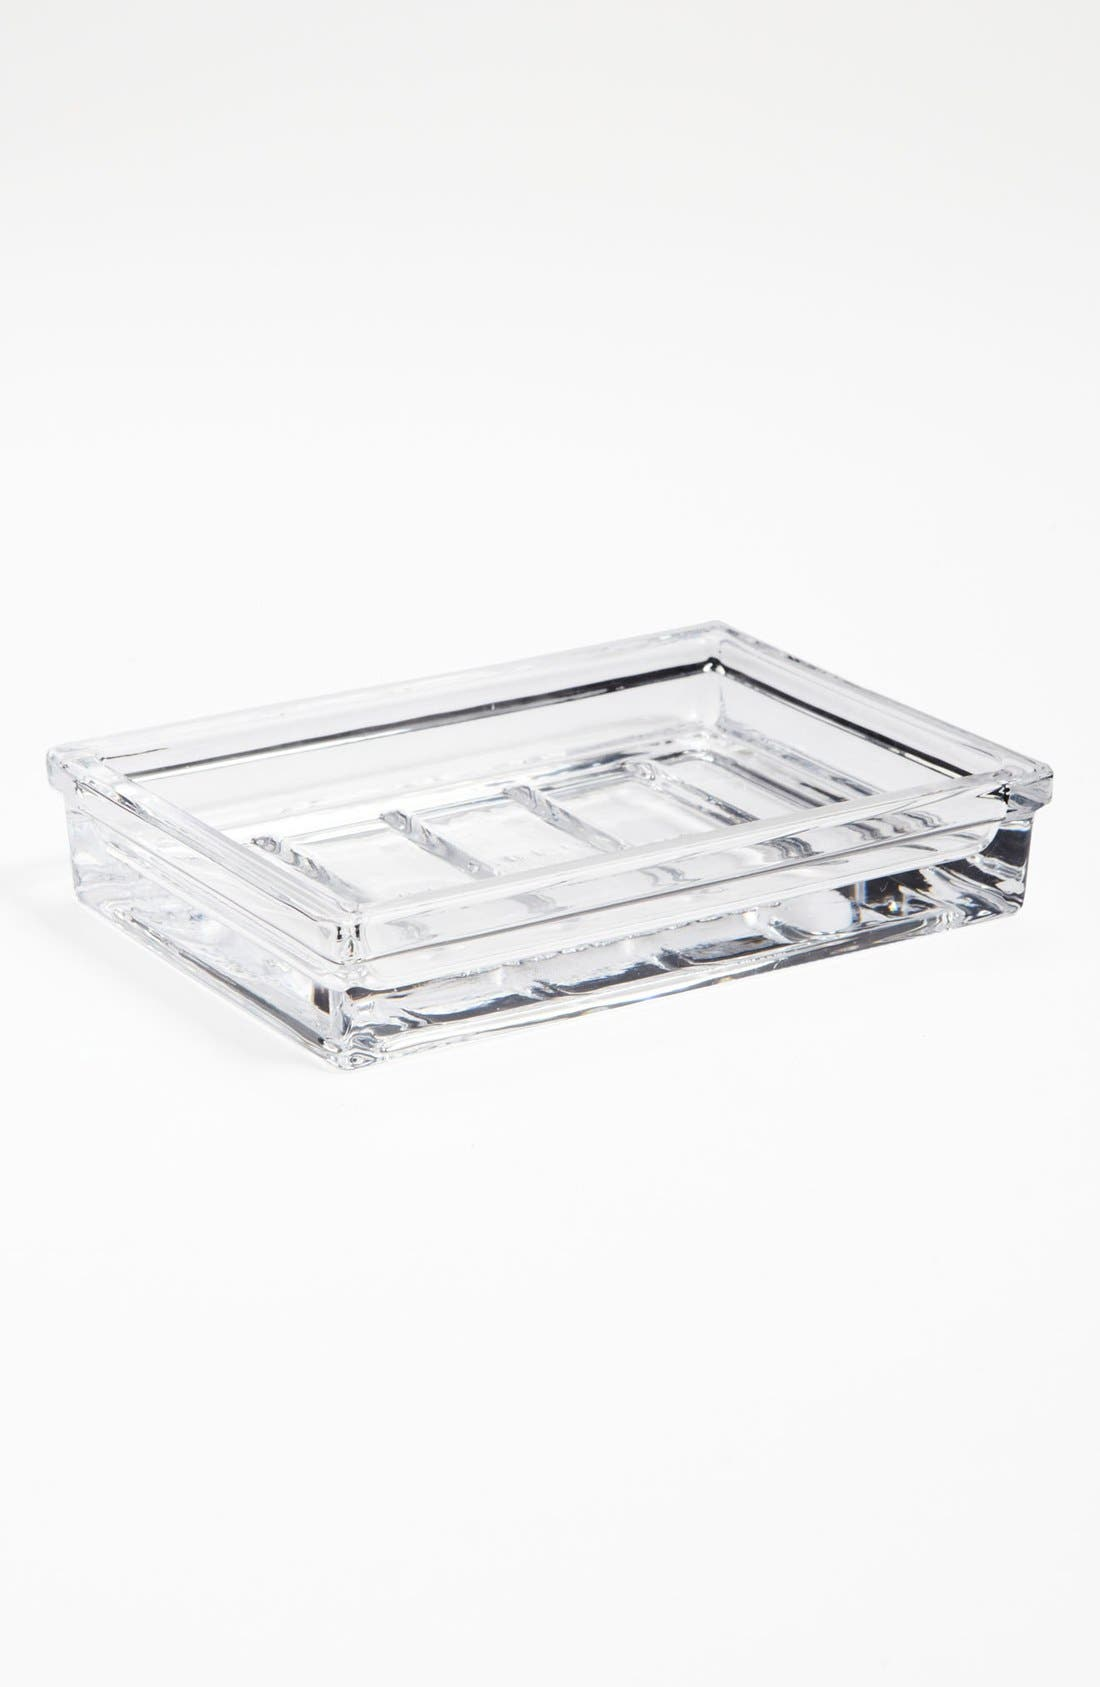 Waterworks Studio 'Apothecary' Soap Dish (Online Only)